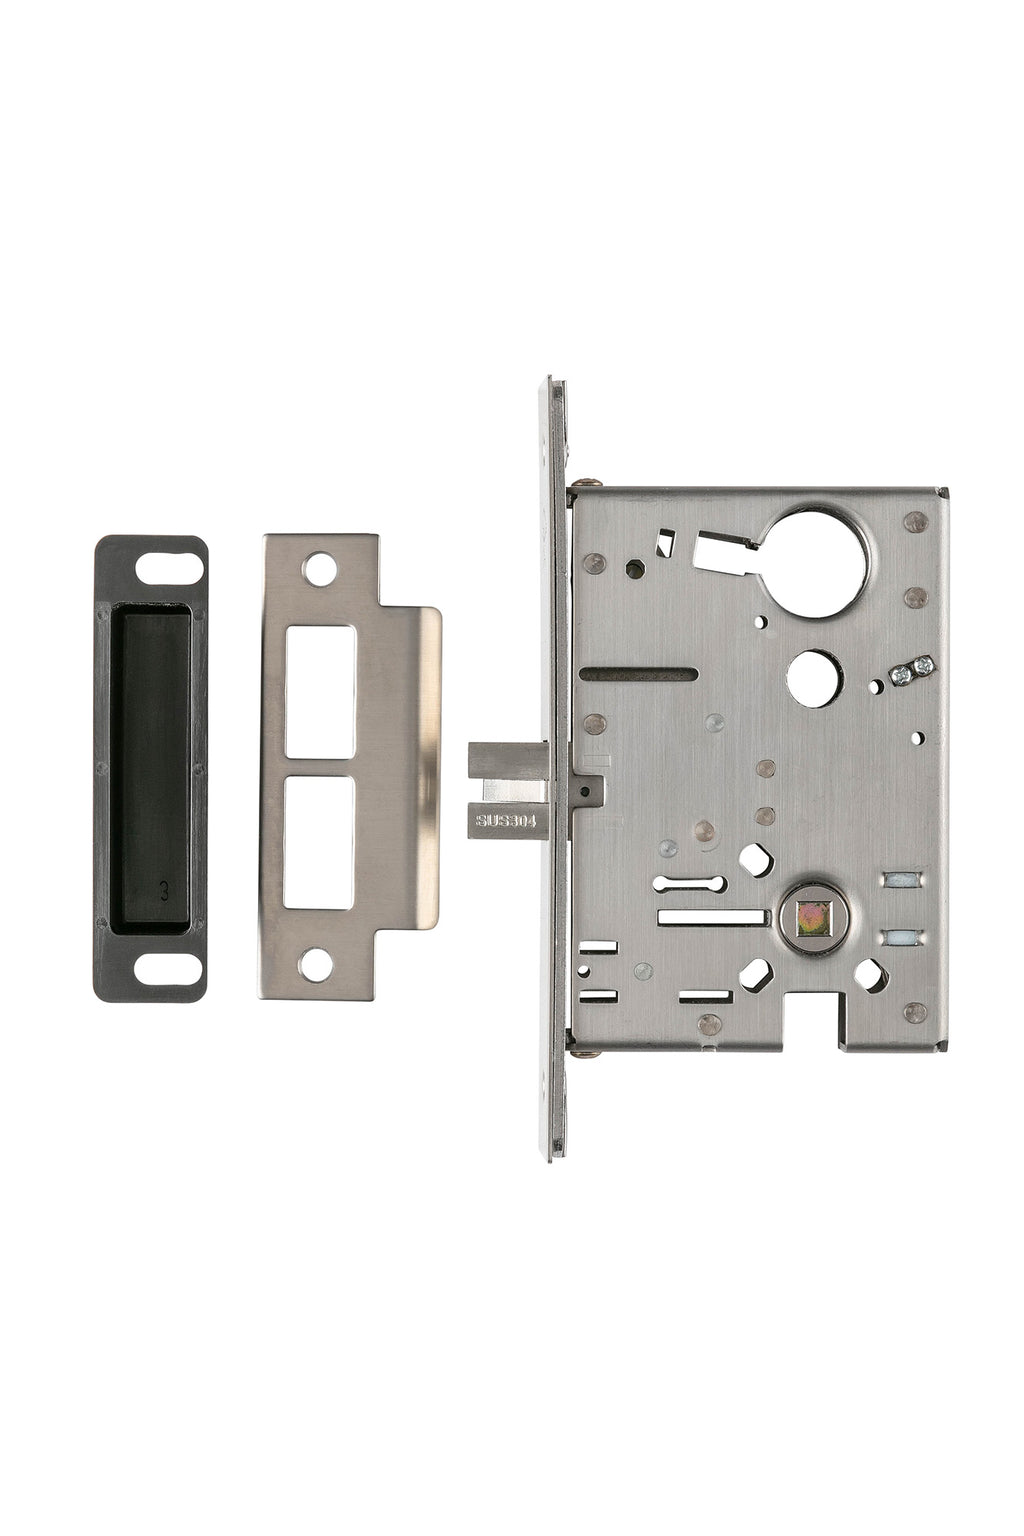 OpenEdge 600 and 700 Series - Mortise Body